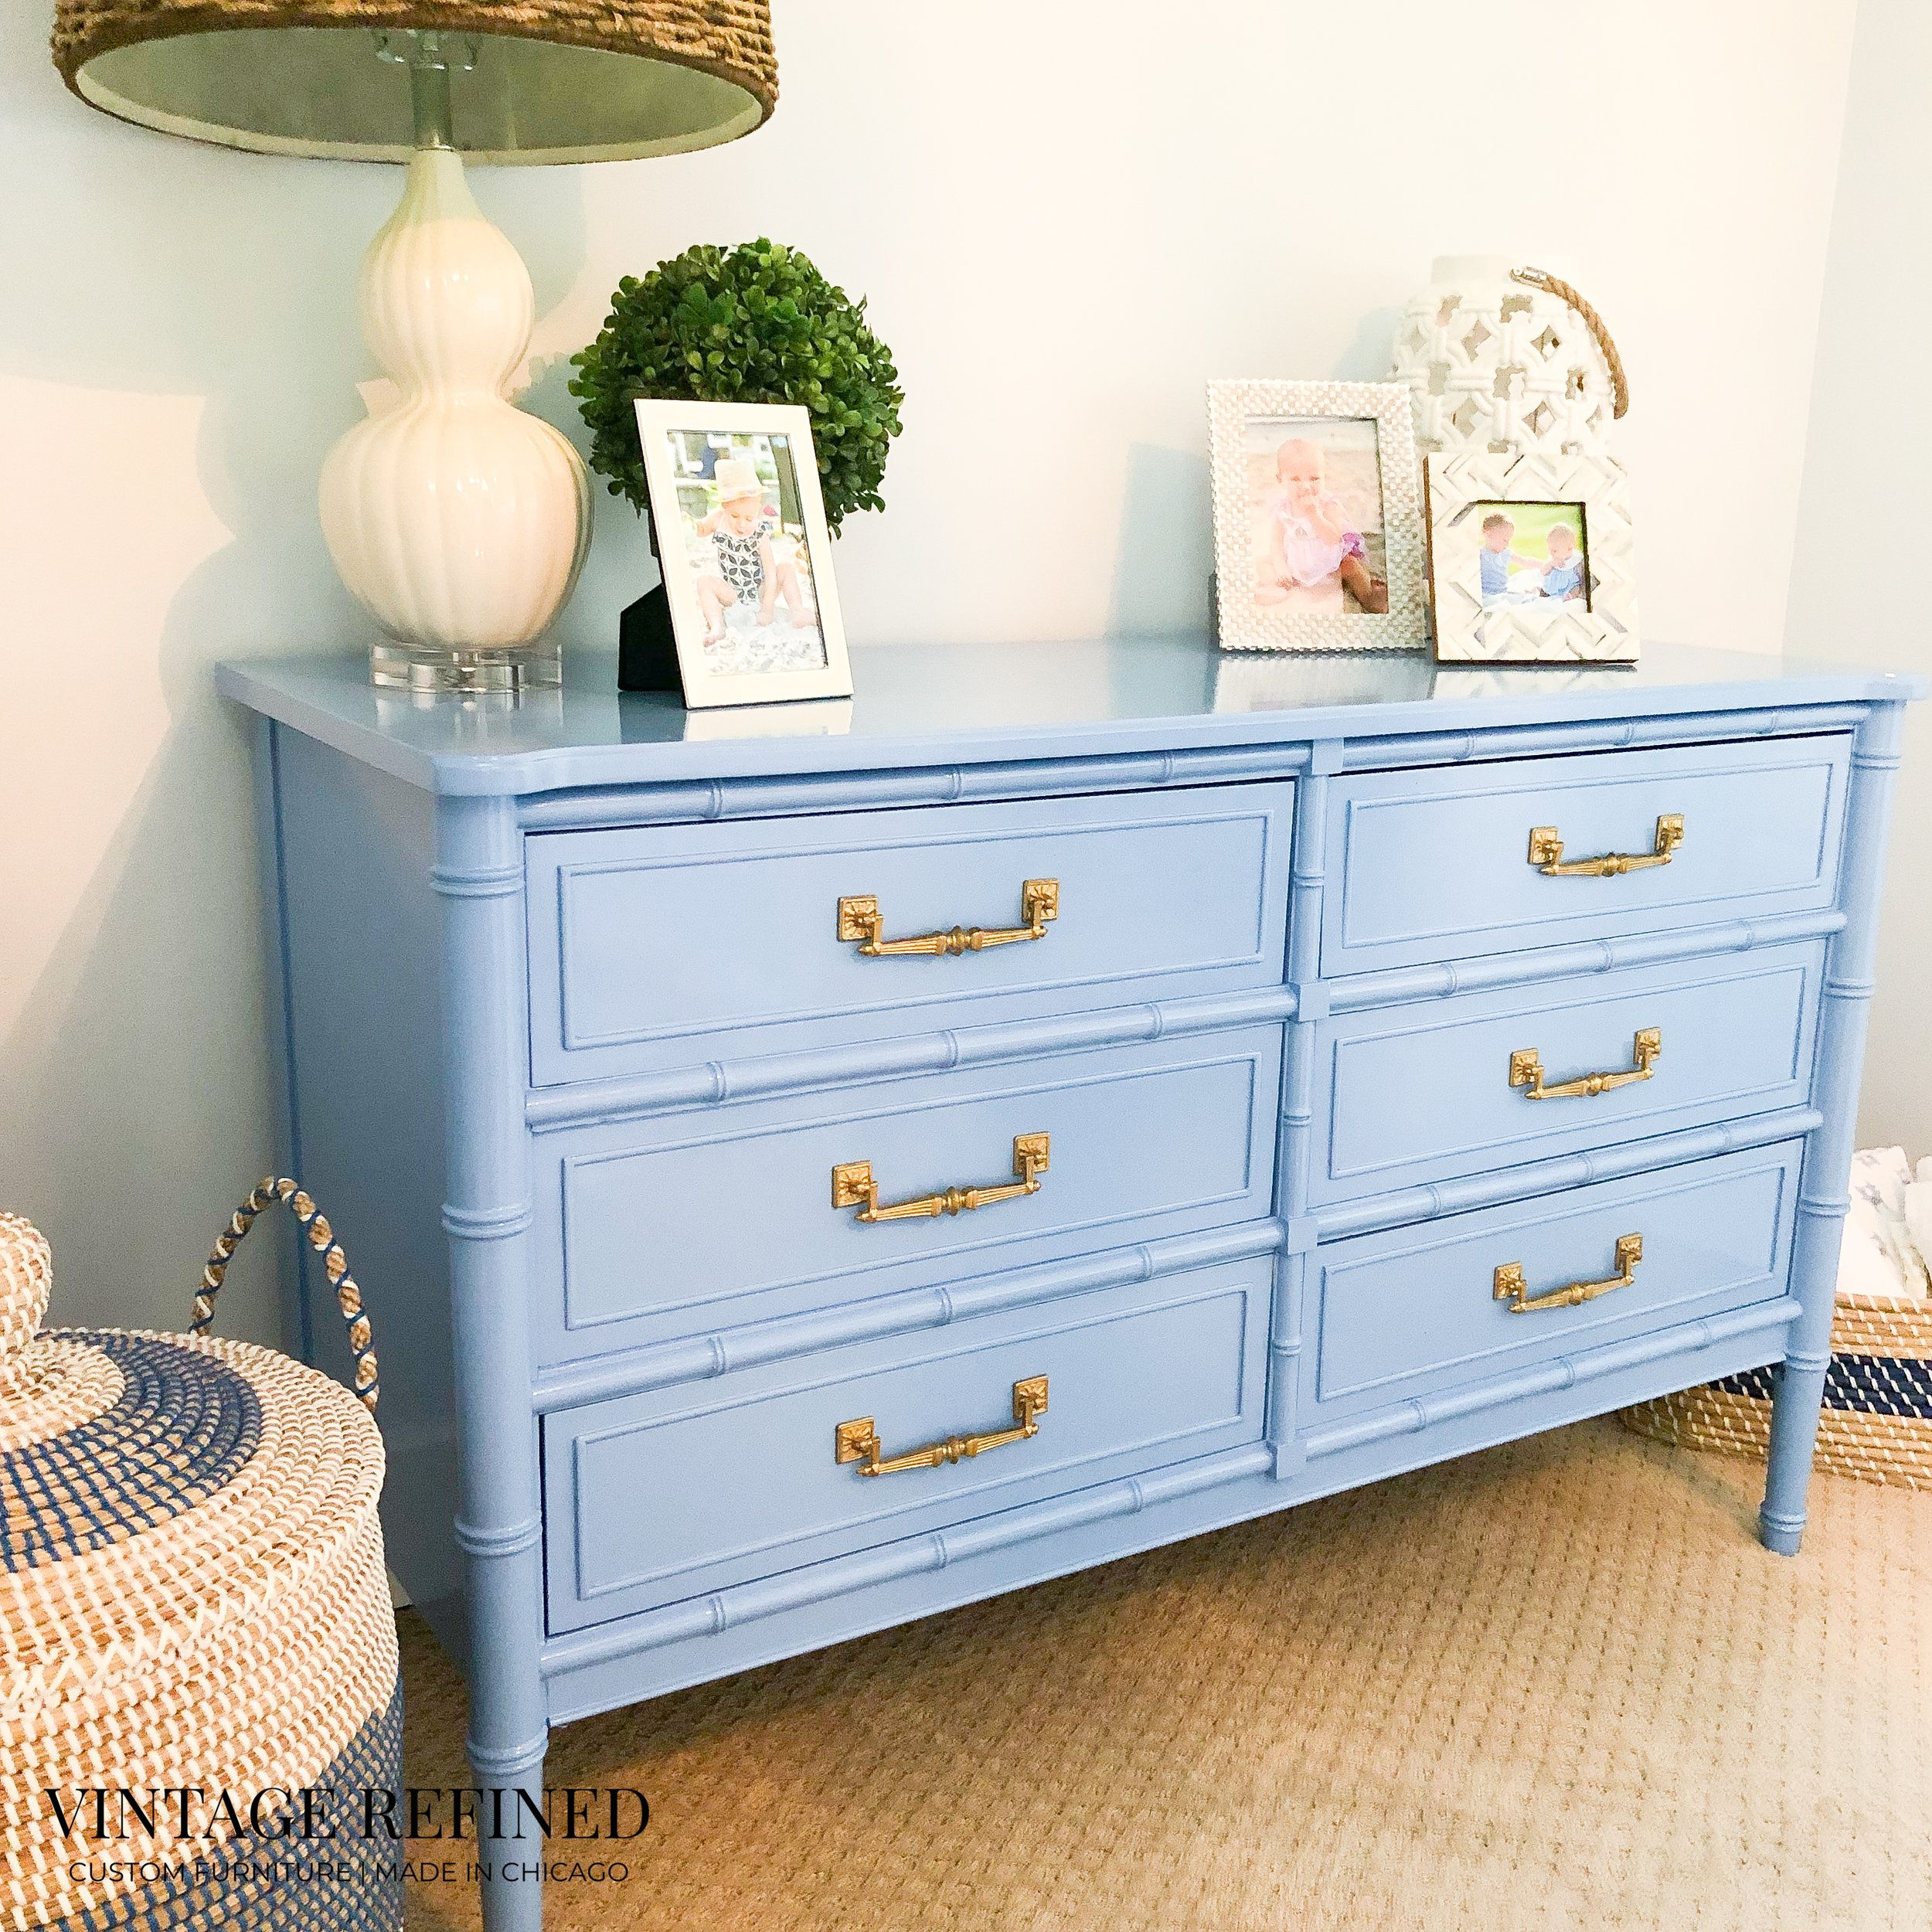 Vintage Refined How To Pull Off A Blue White Nursery For A Girl White Gloss Bedroom Furniture Furniture Changing Table Dresser